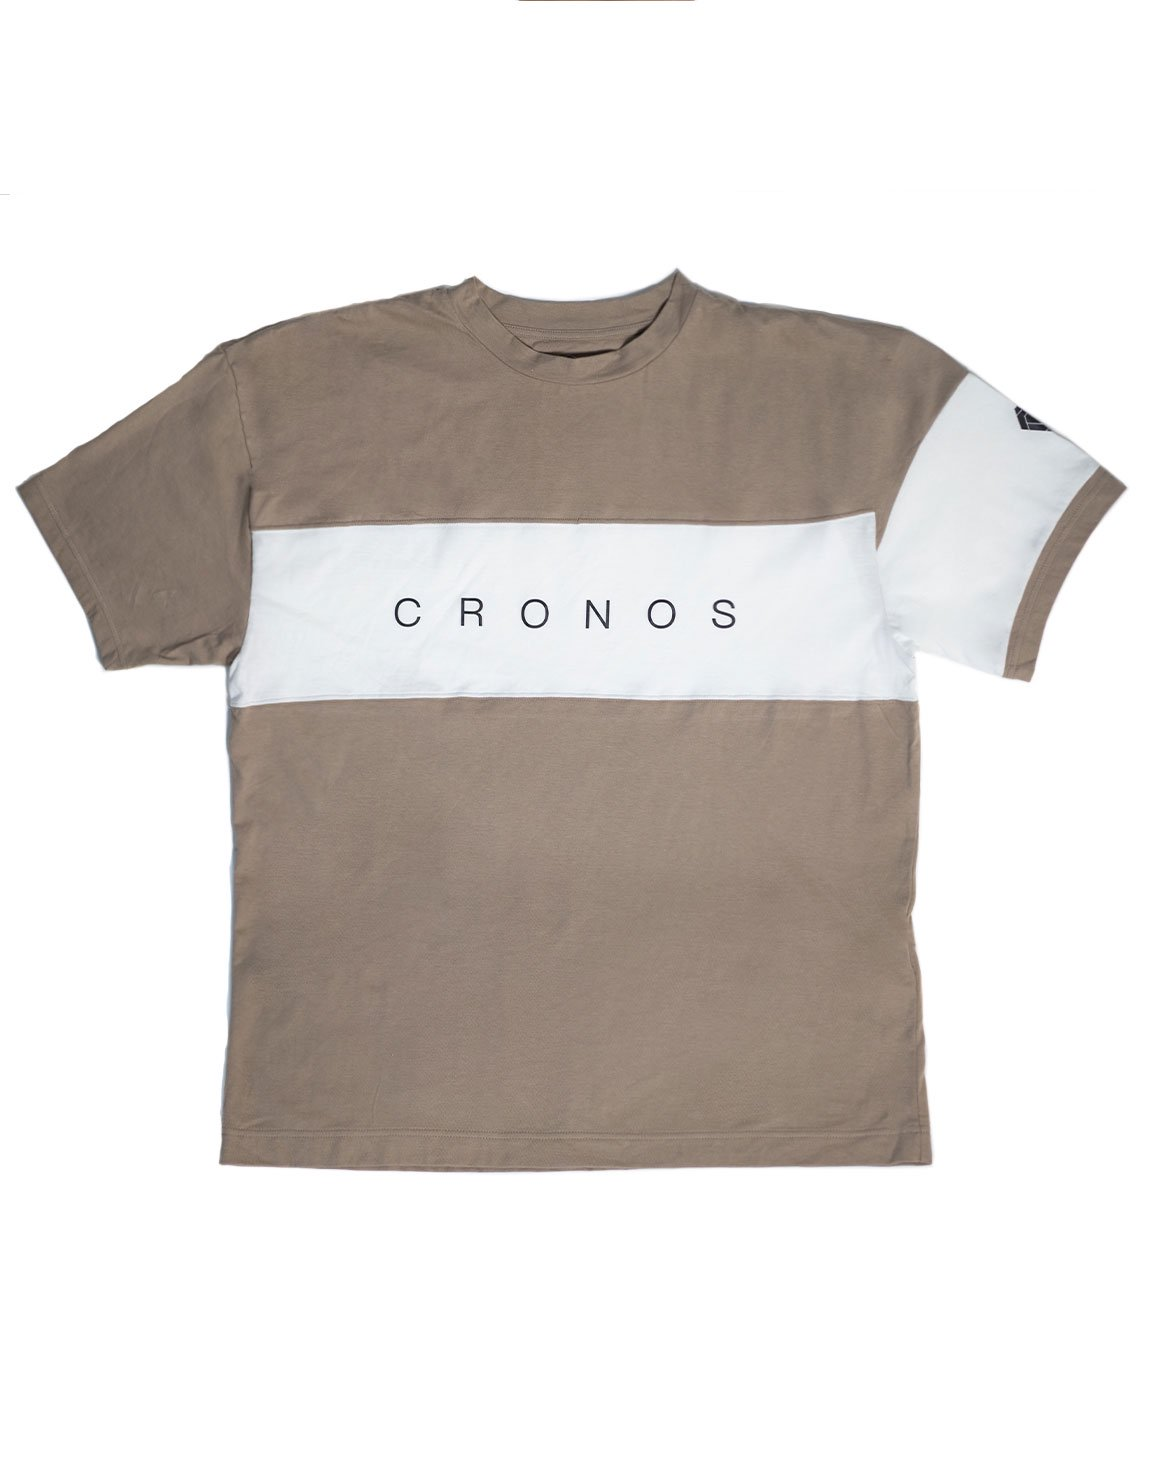 <img class='new_mark_img1' src='https://img.shop-pro.jp/img/new/icons1.gif' style='border:none;display:inline;margin:0px;padding:0px;width:auto;' />CRONOS FRONT THICK LINE  T-SHIRT BEIGE